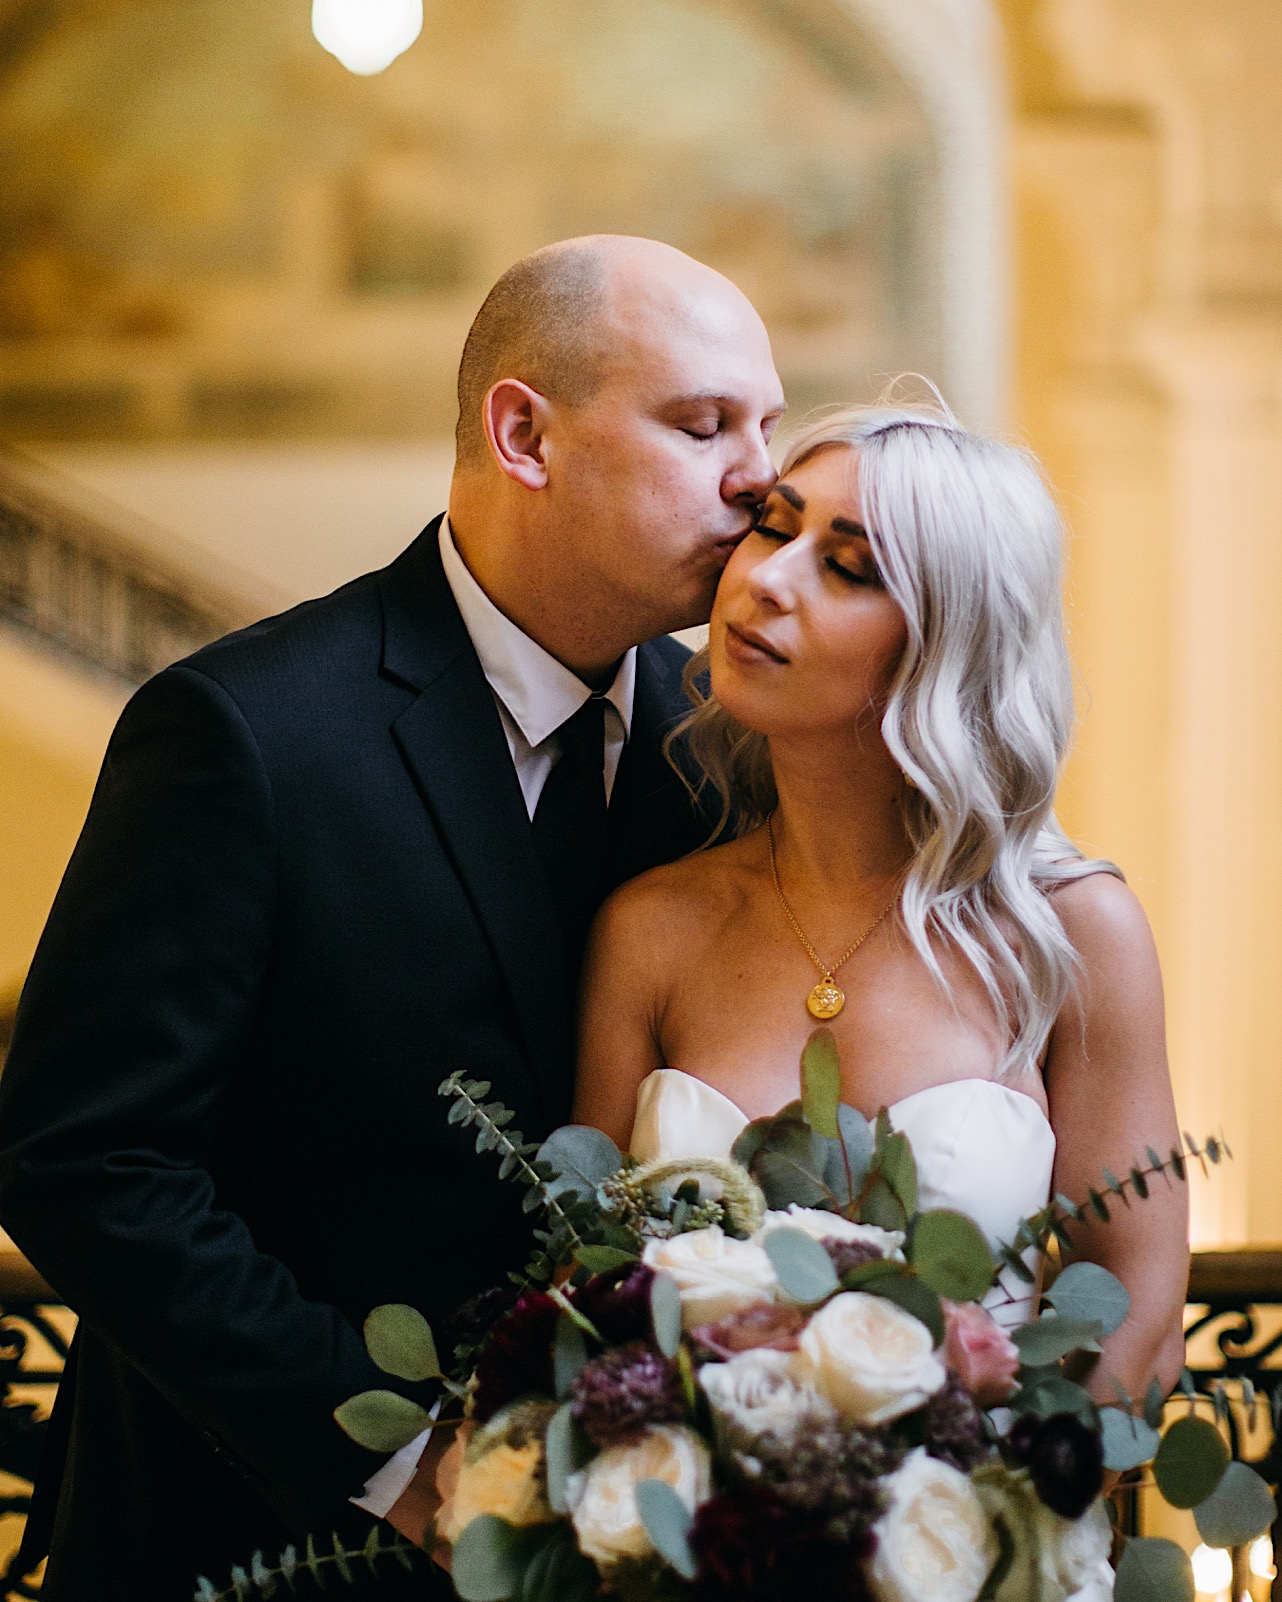 groom kisses bride on her cheek at the courthouse of their halloween elopement